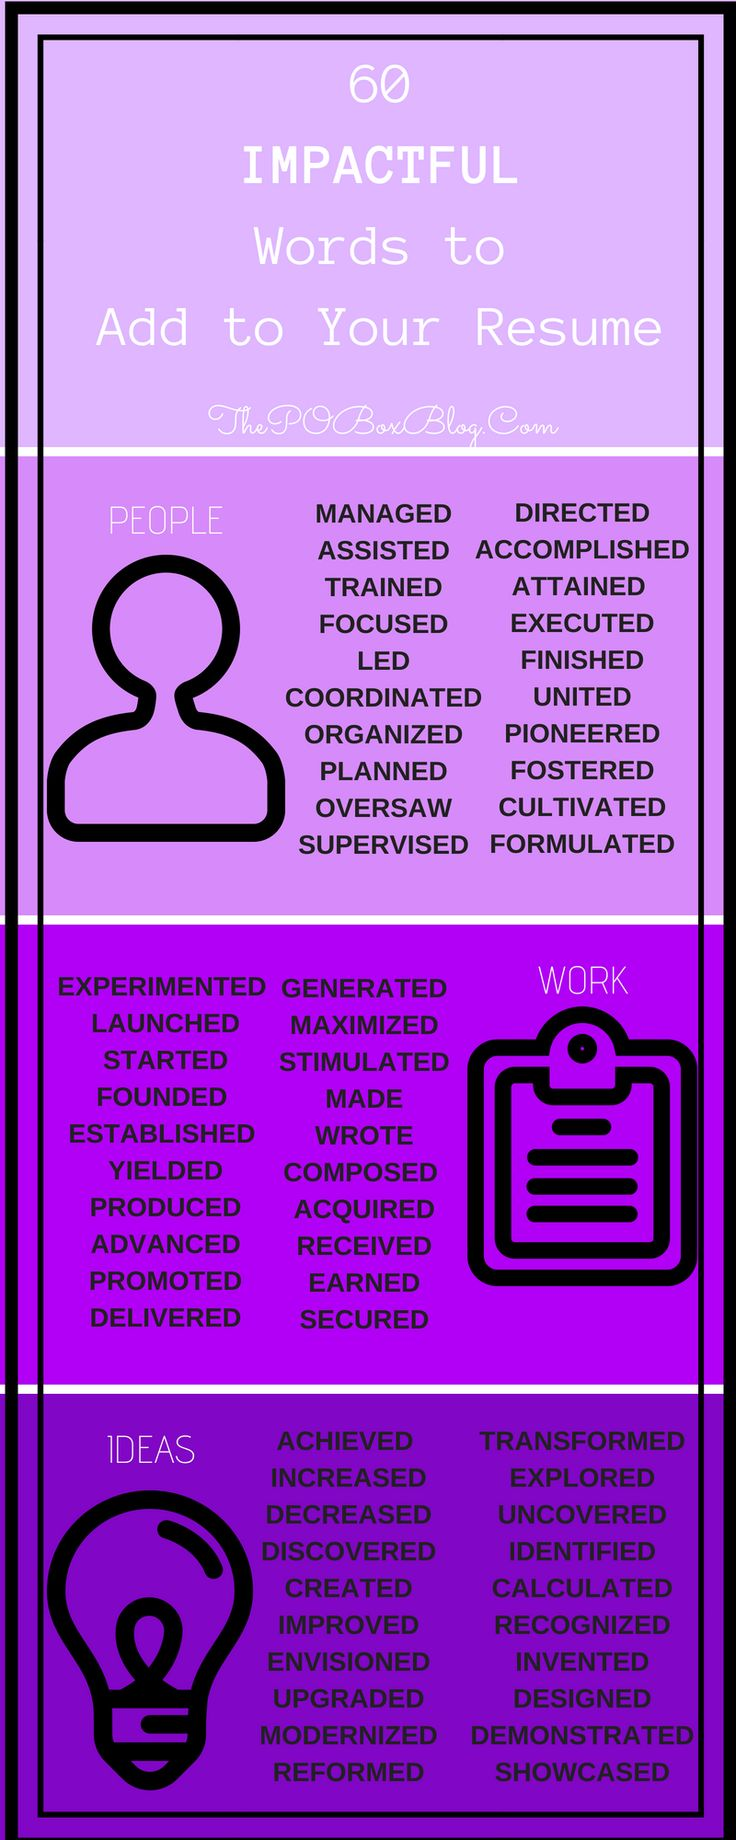 60 Impactful Words to Add to Your Resume Resume, Words